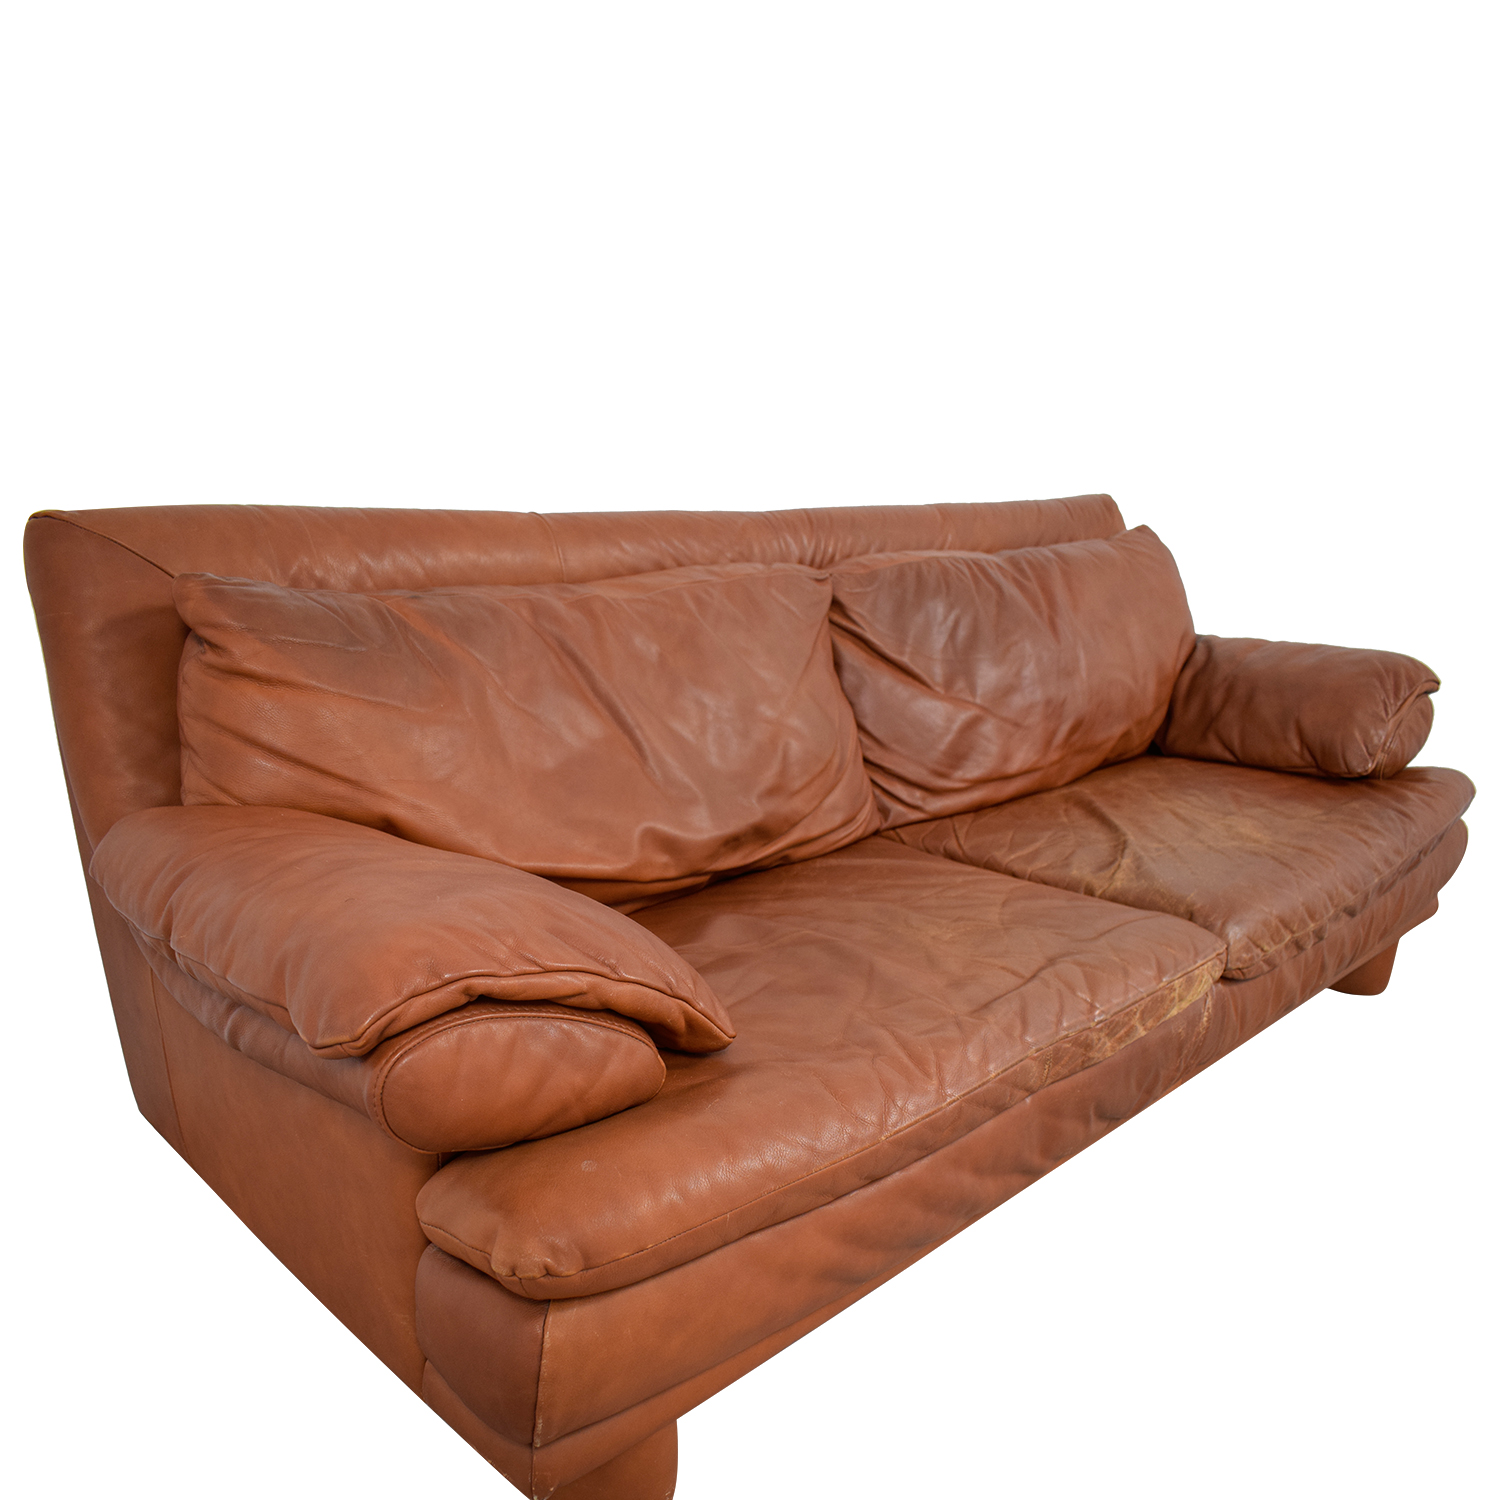 ... Shop Maurice Villency Maurice Villency Brown Leather Sofa Online ...